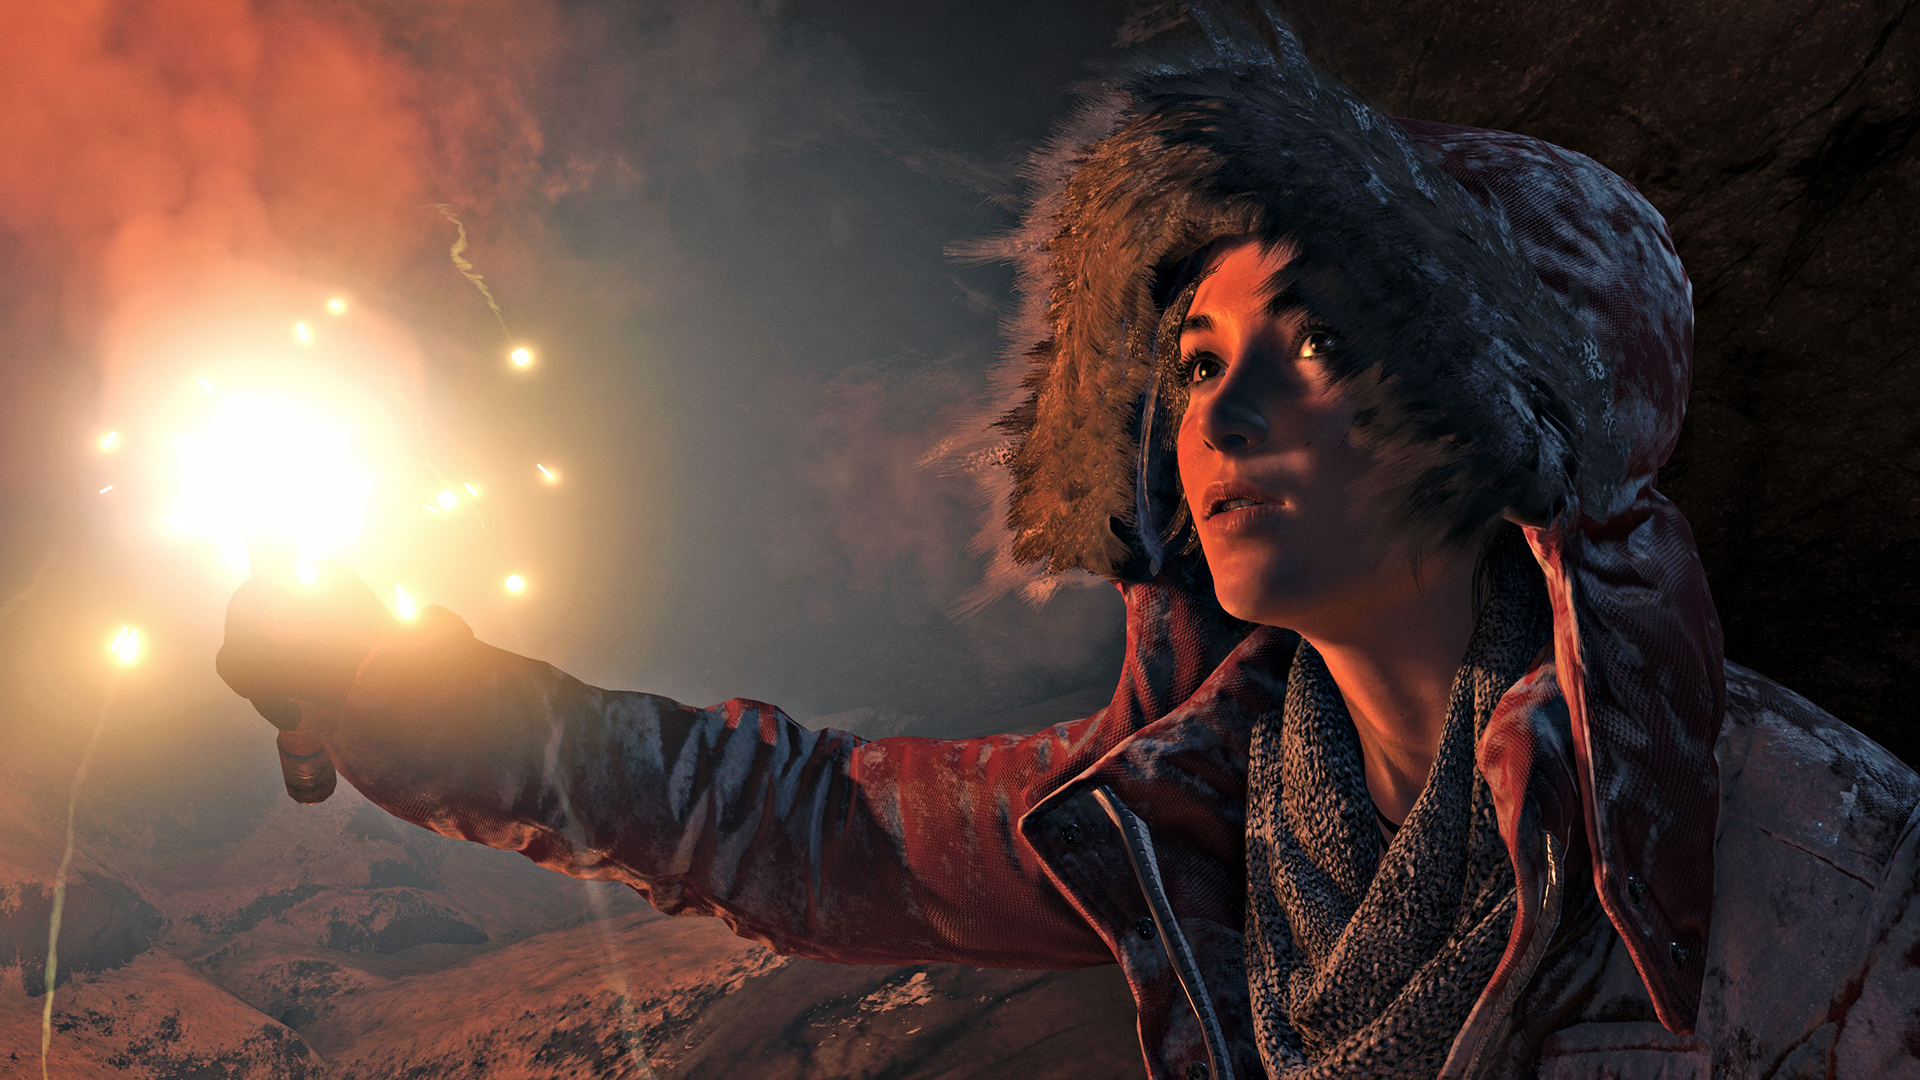 Pre Order Rise Of The Tomb Raider Ps4 On Ps Store And Get Tomb